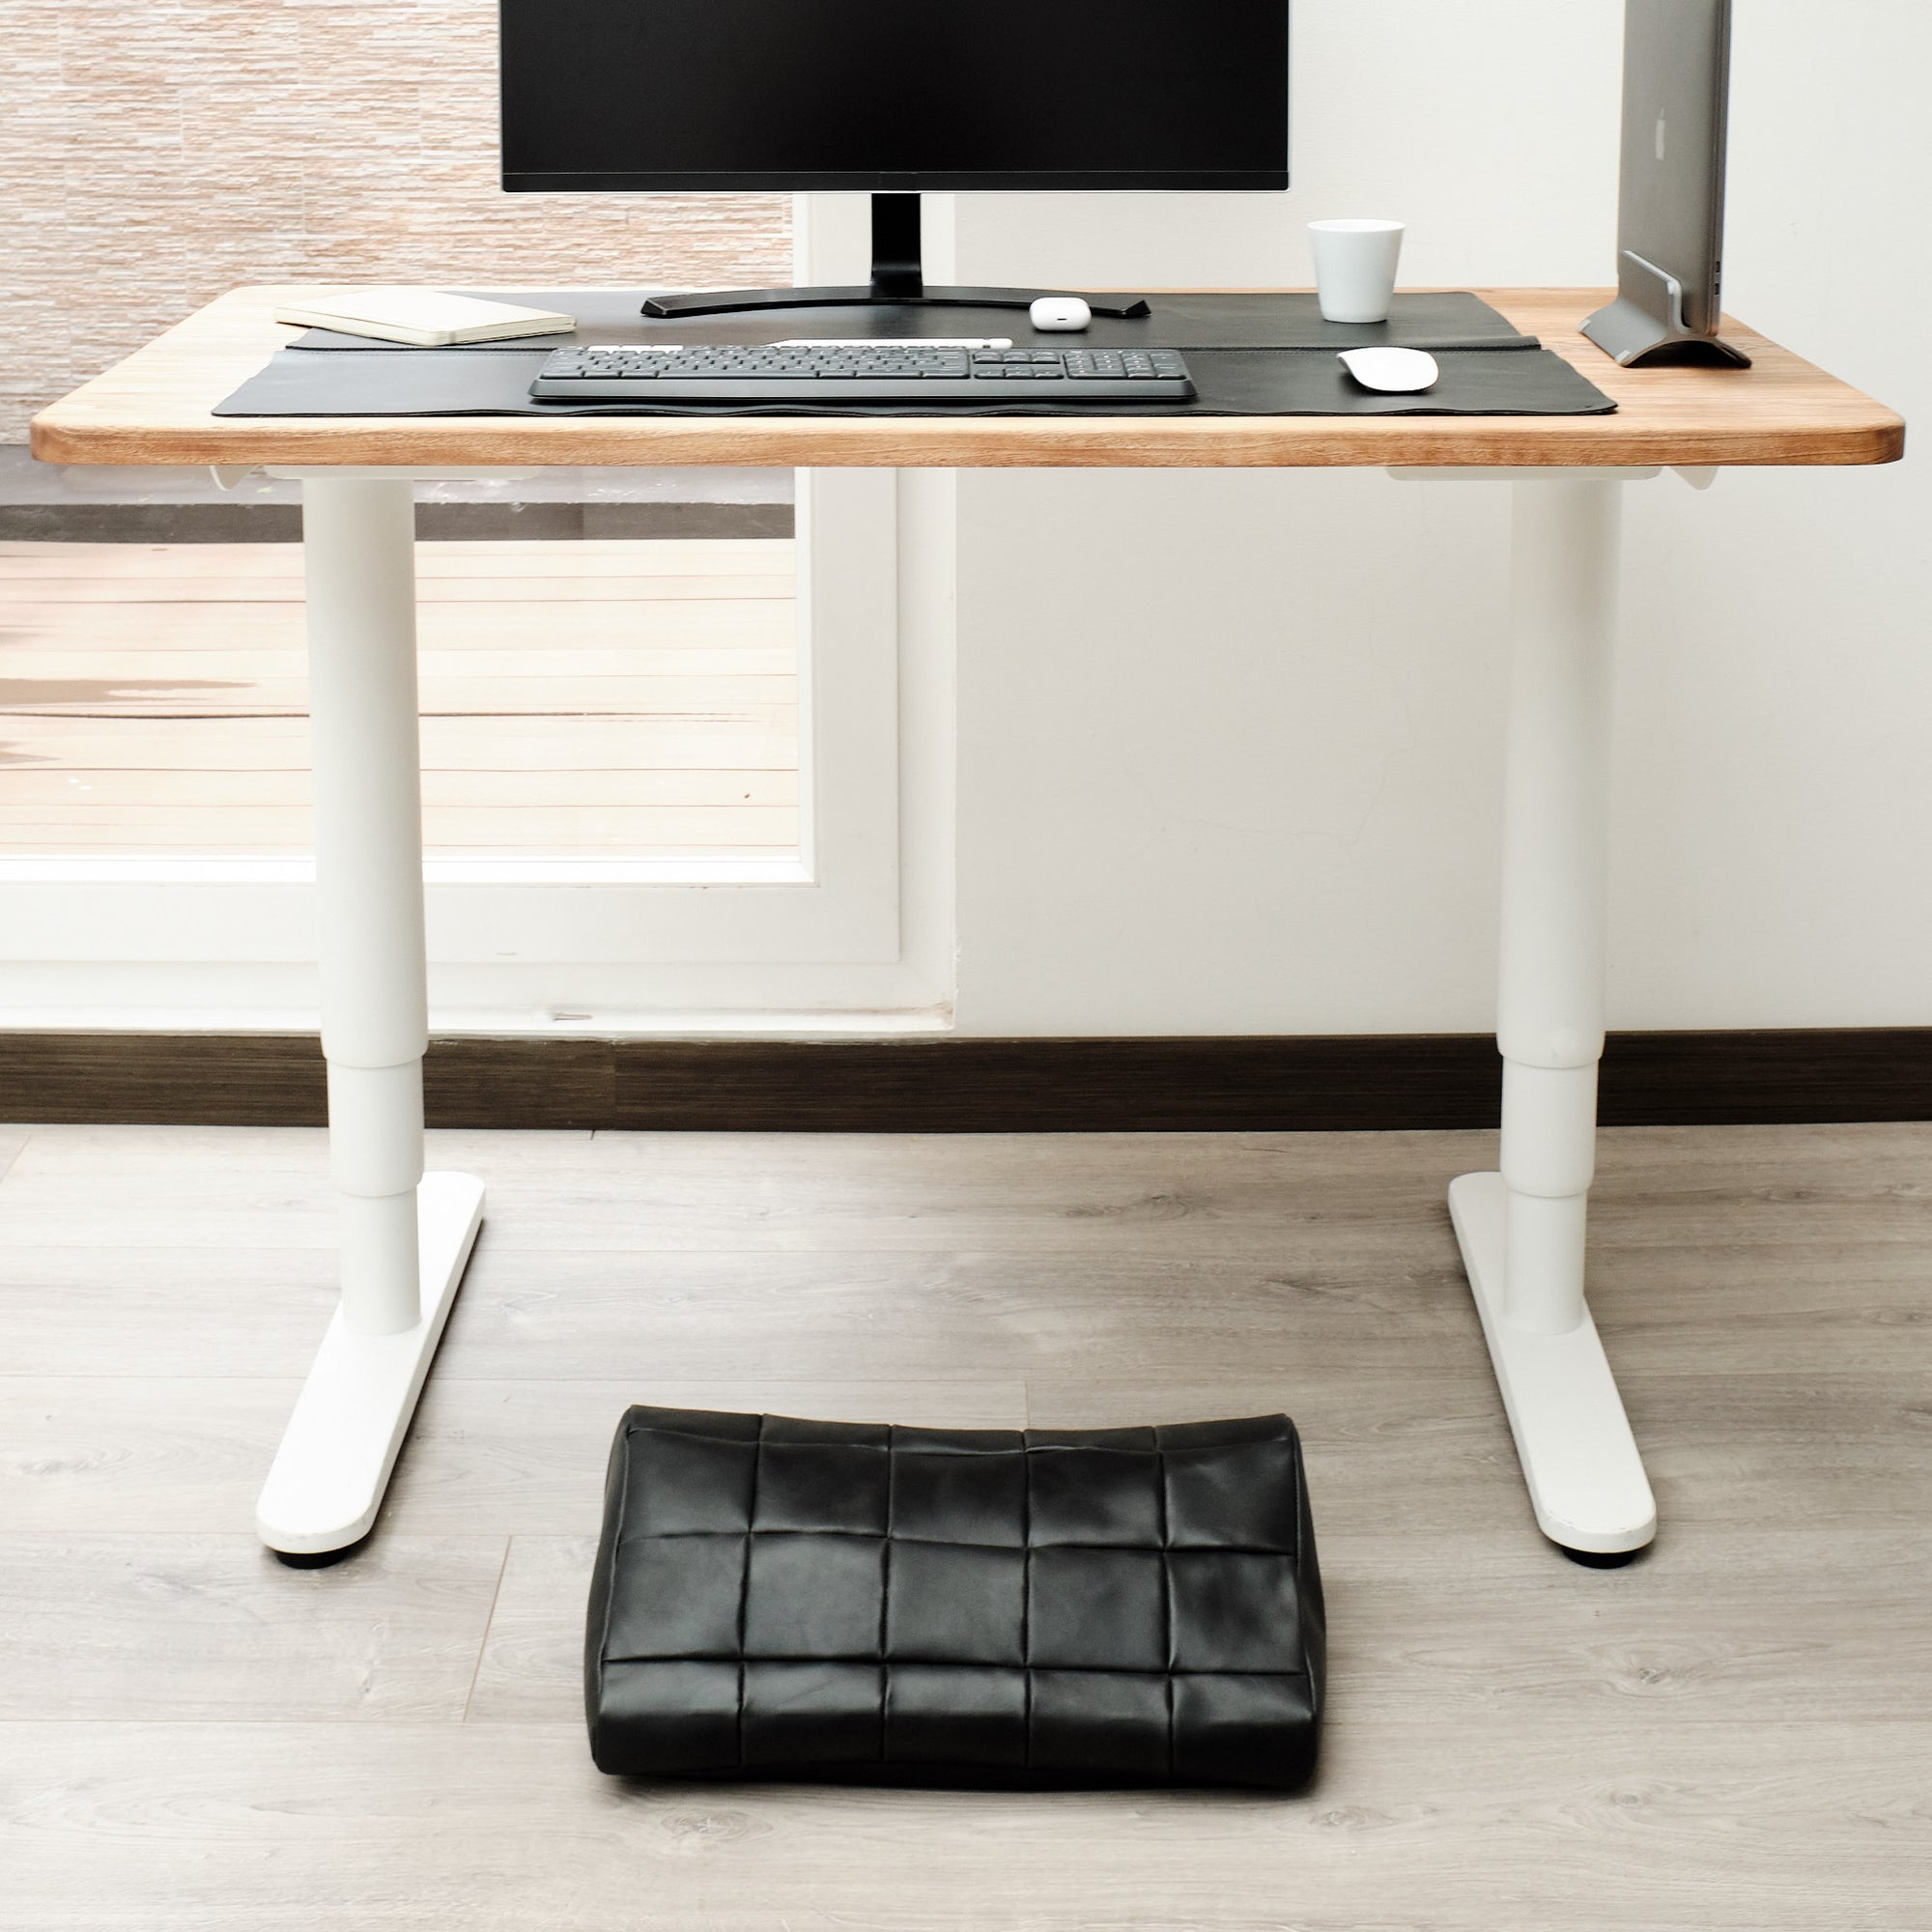 Cover. Ergonomic under desk footrest cover in black by Capra Leather